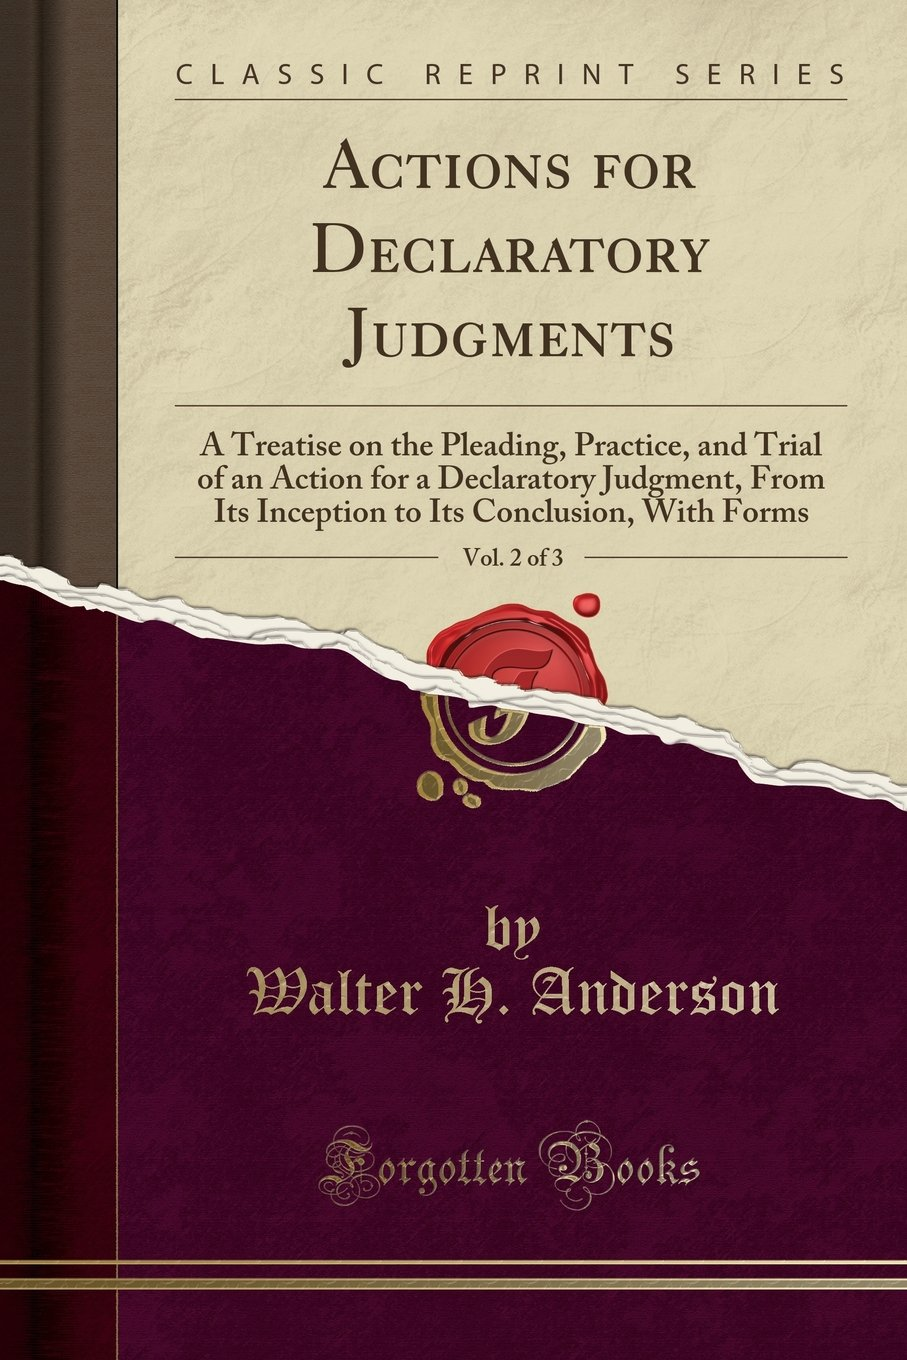 Actions for Declaratory Judgments, Vol. 2 of 3: A Treatise on the Pleading, Practice, and Trial of an Action for a Declaratory Judgment, From Its ... Its Conclusion, With Forms (Classic Reprint) PDF